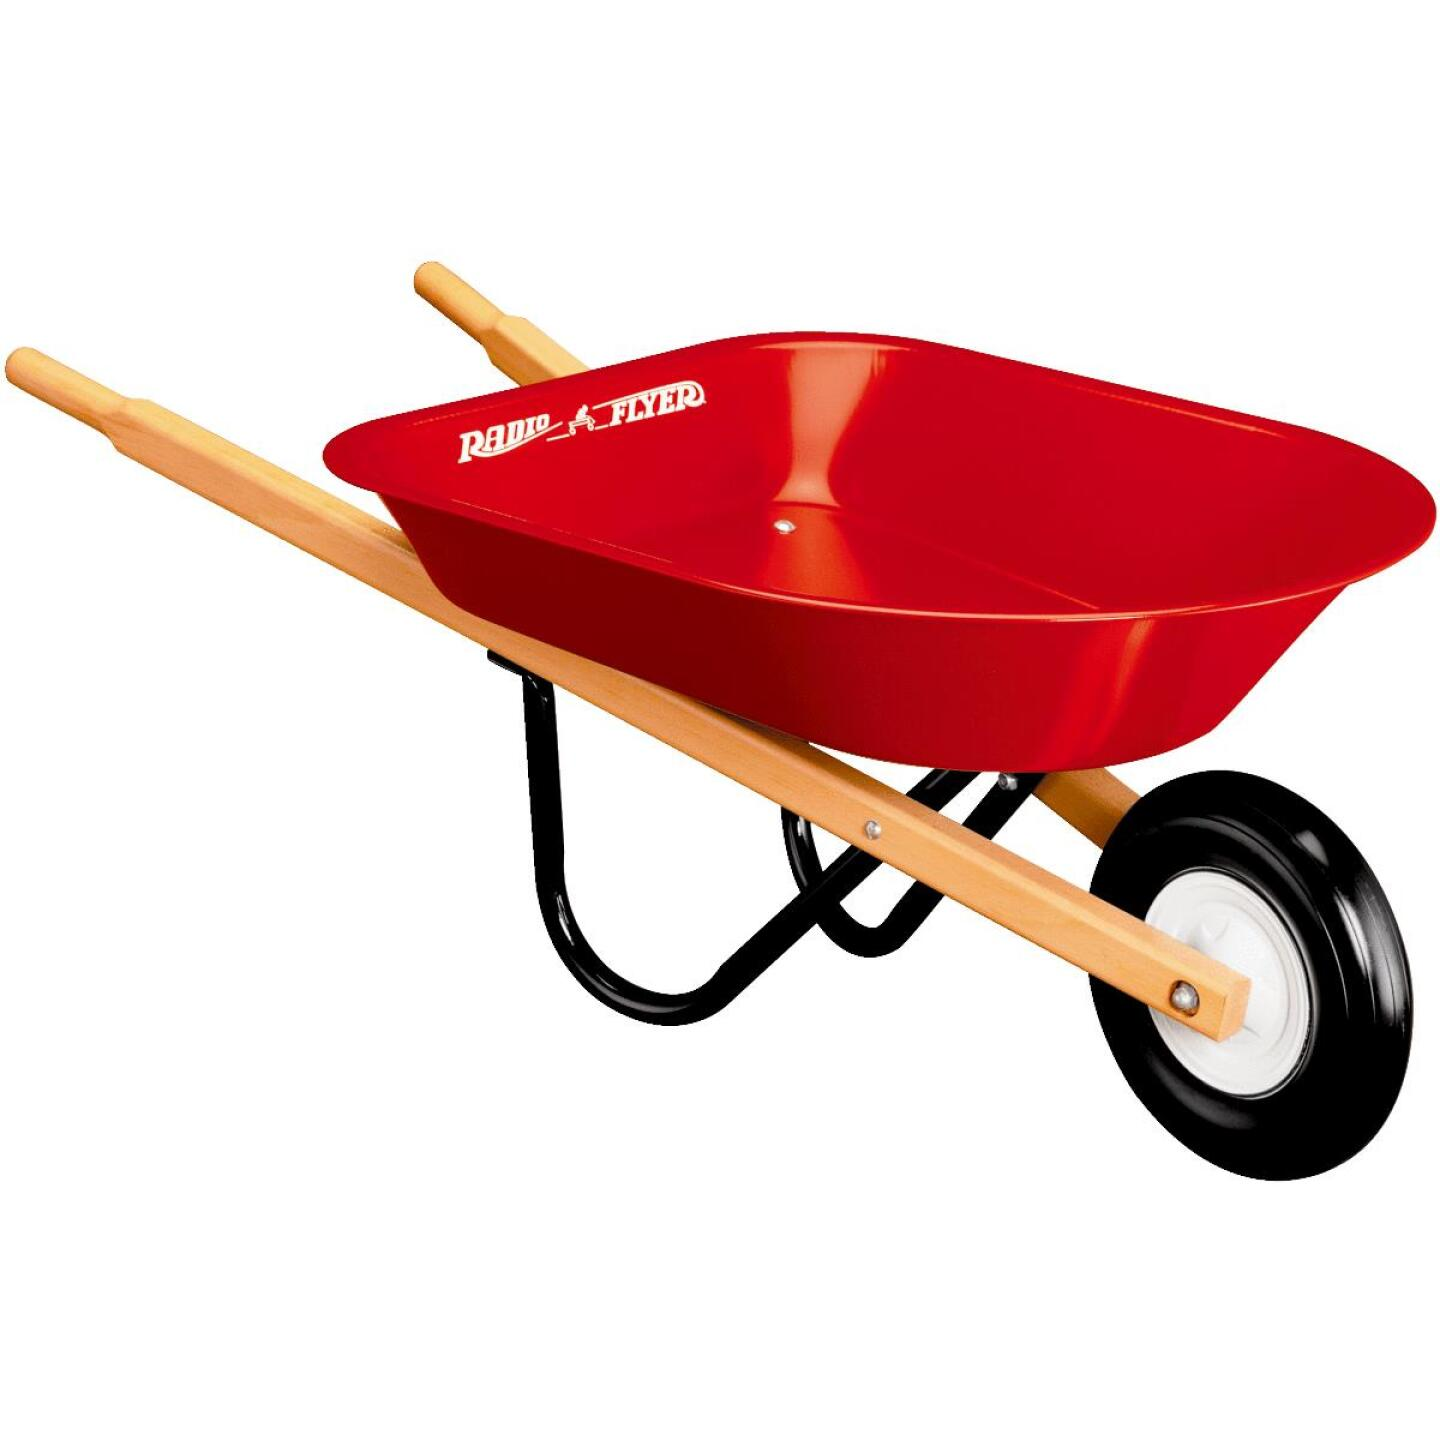 Radio Flyer 30 Lb. Steel Kid's Wheelbarrow Image 1